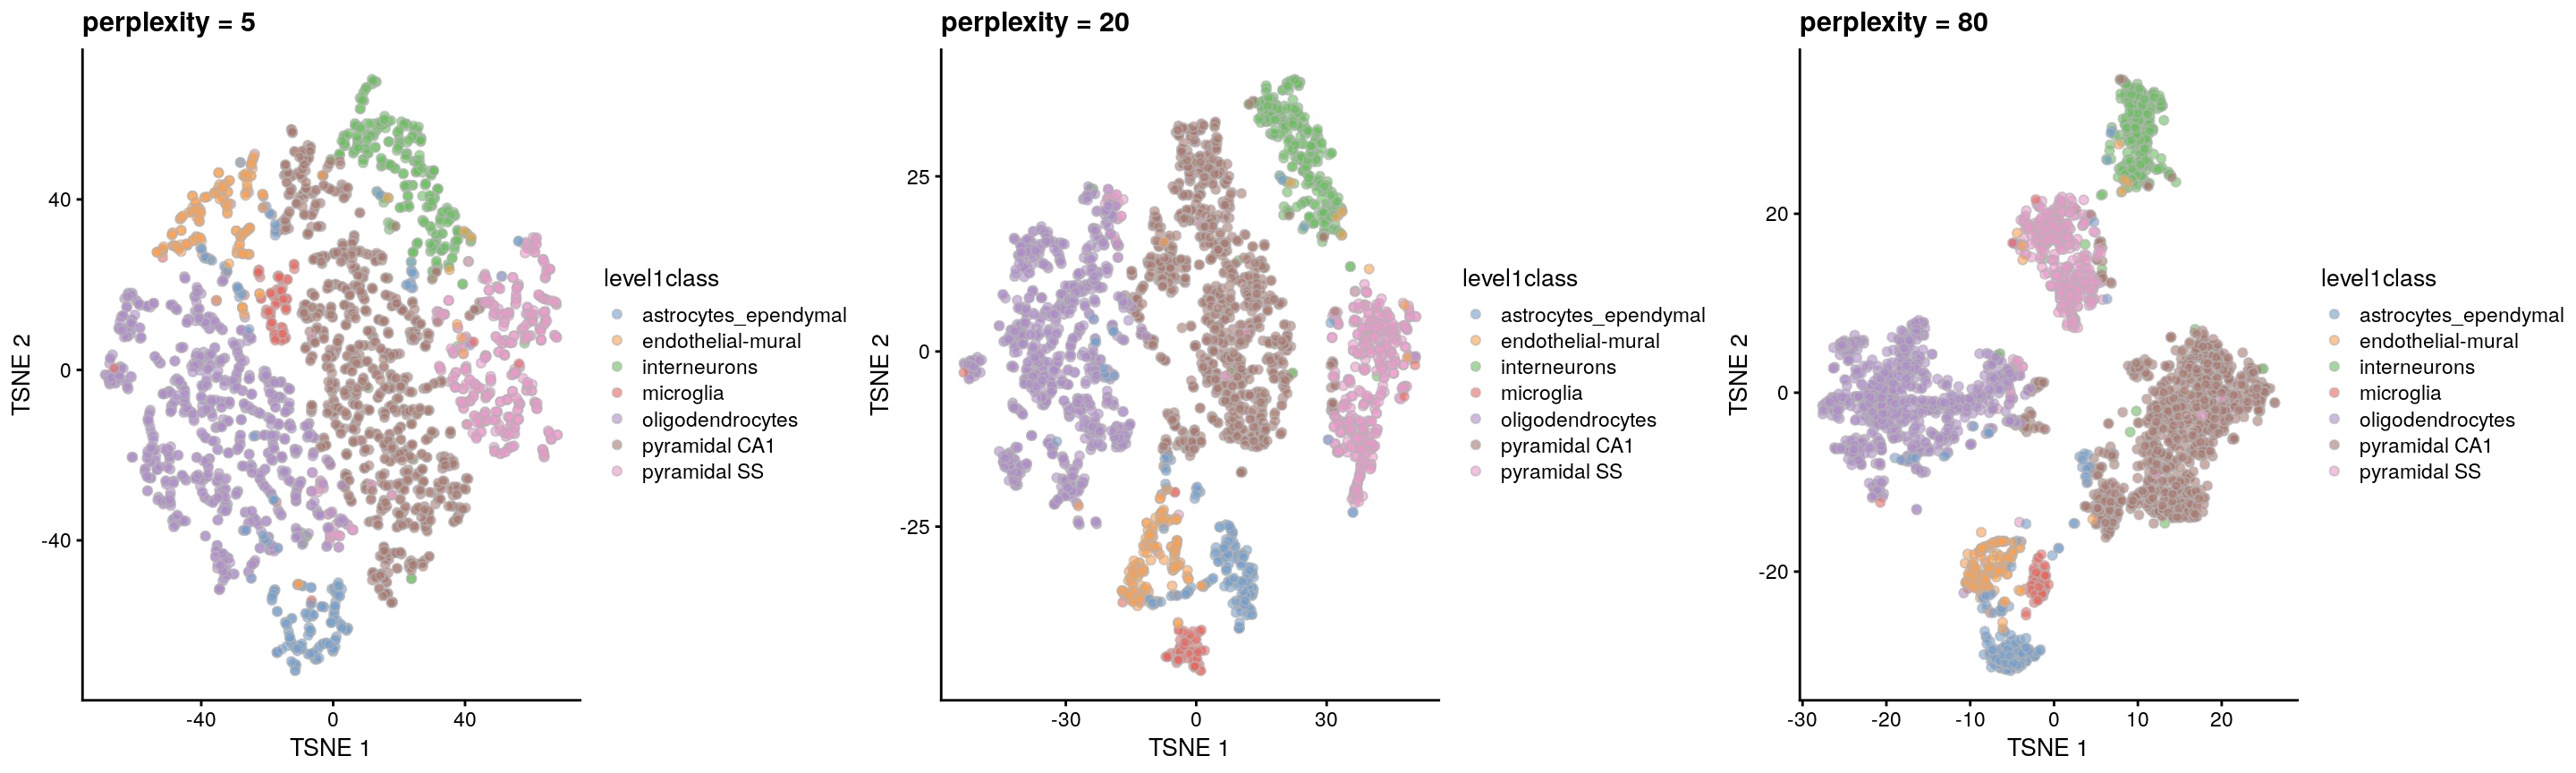 $t$-SNE plots constructed from the top PCs in the Zeisel brain dataset, using a range of perplexity values. Each point represents a cell, coloured according to its annotation.